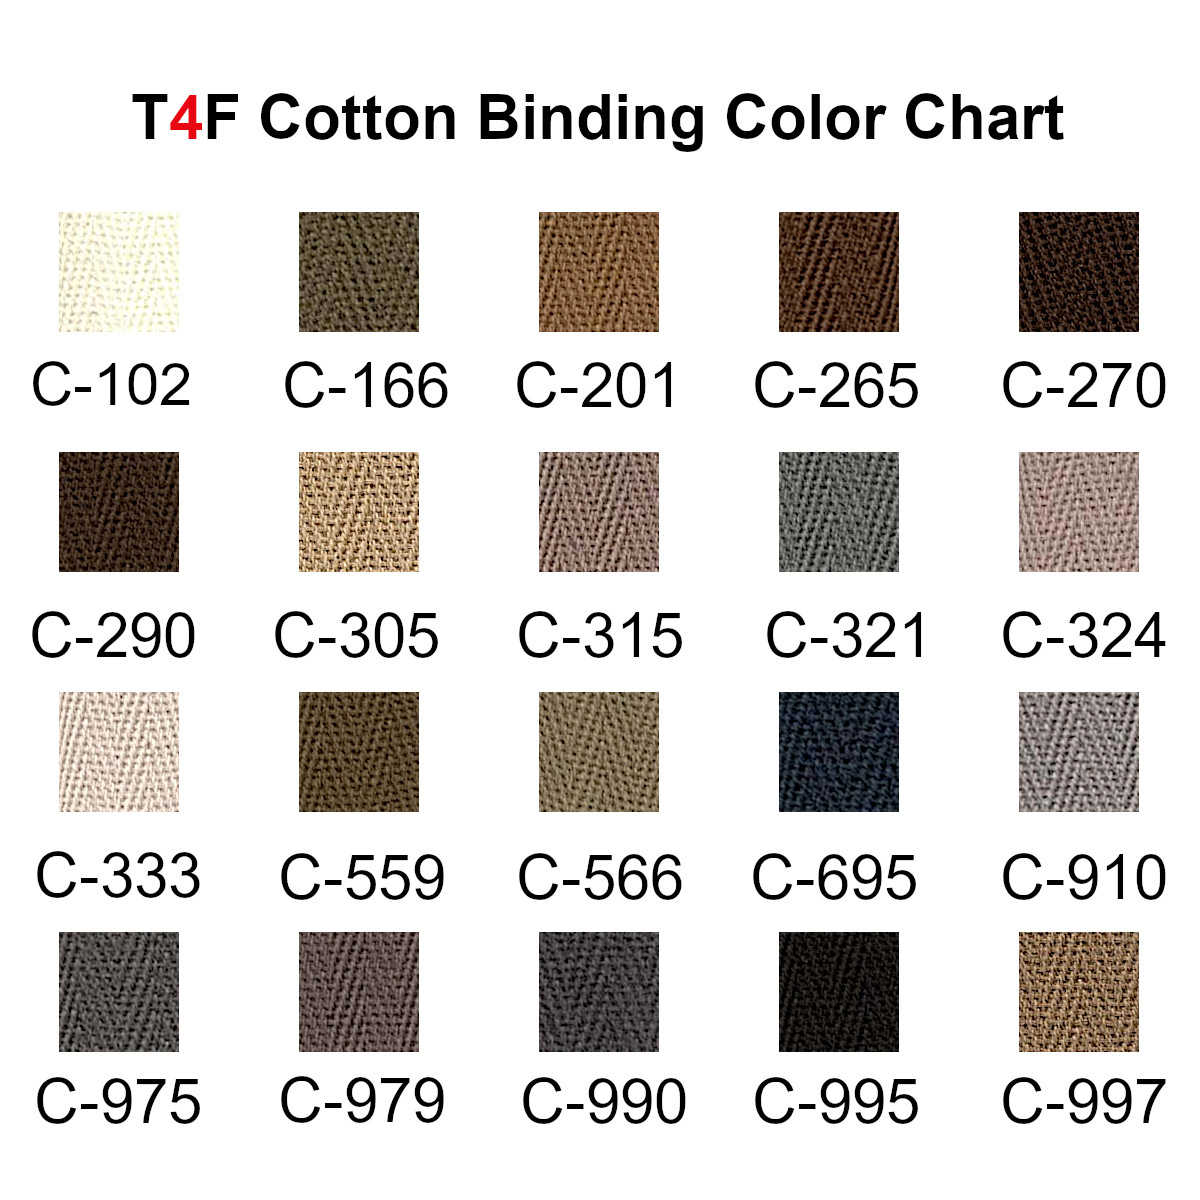 T4F Cotton Binding Color Chart